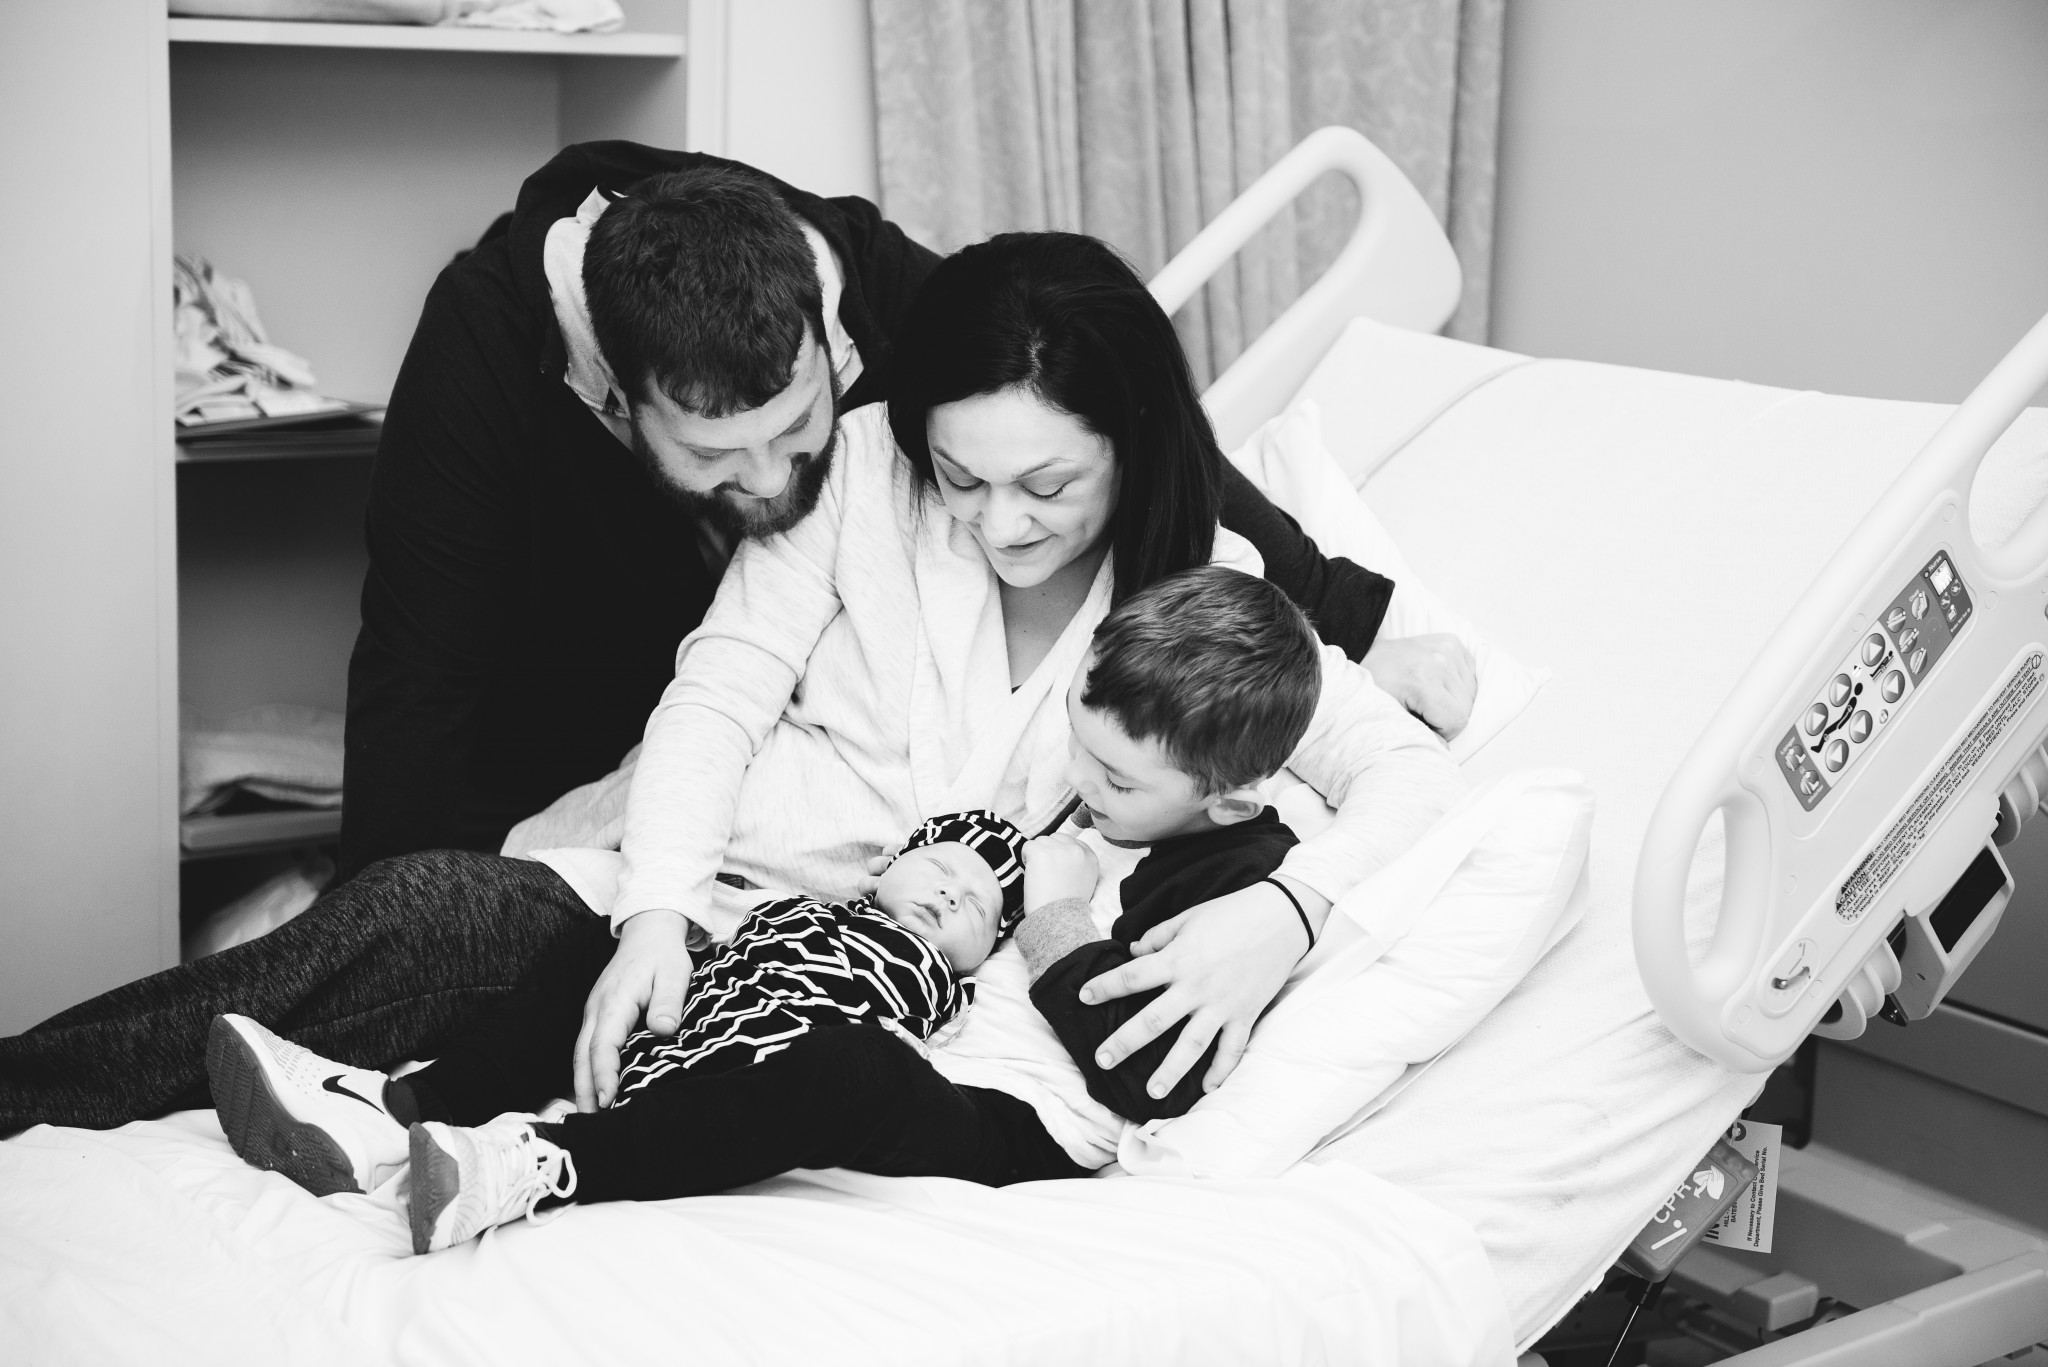 A new family of four gather on the hospital bed during their photography session in a Pittsburgh hospital.